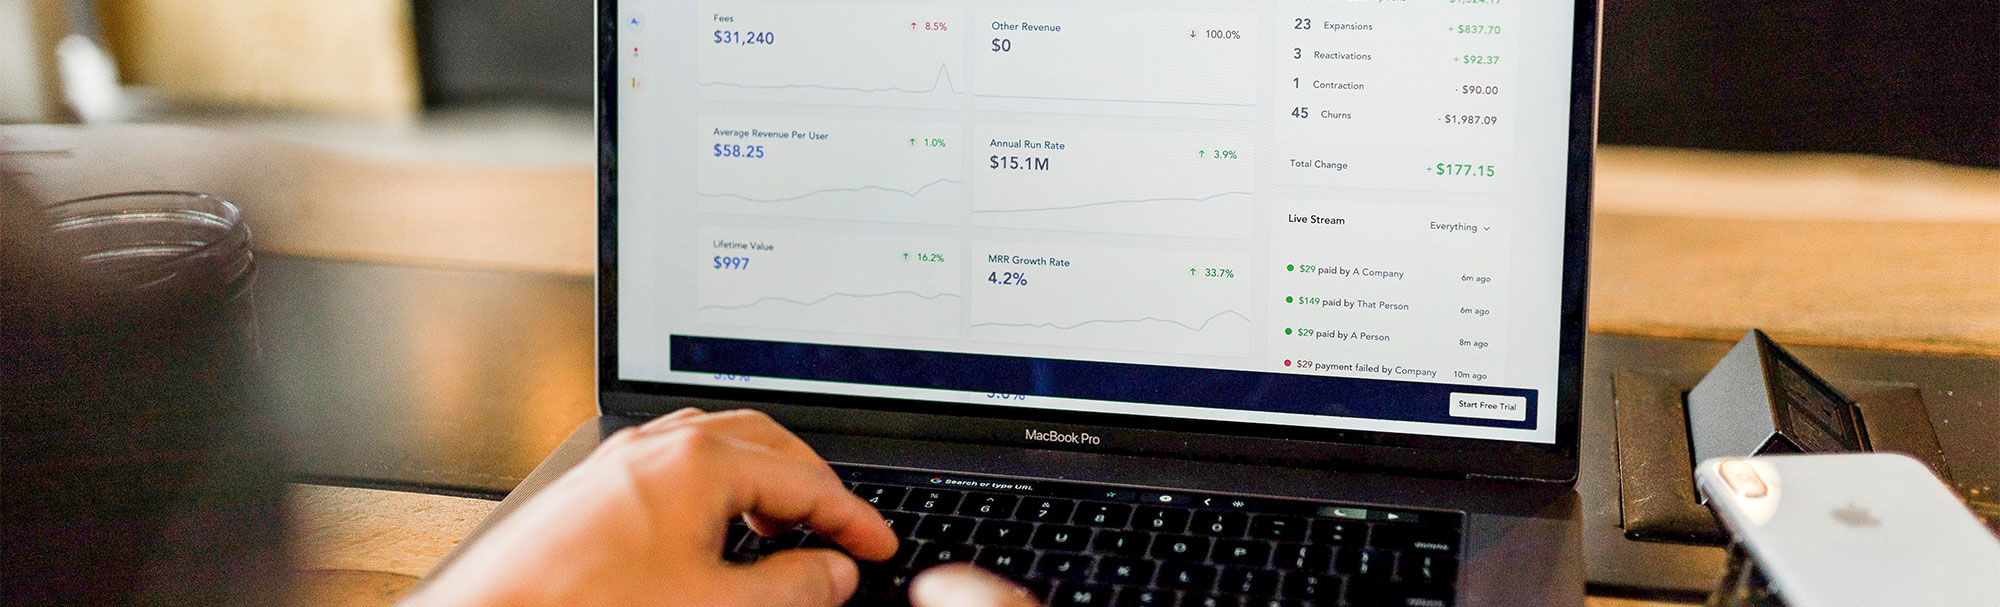 Laptop with cryptocurrency